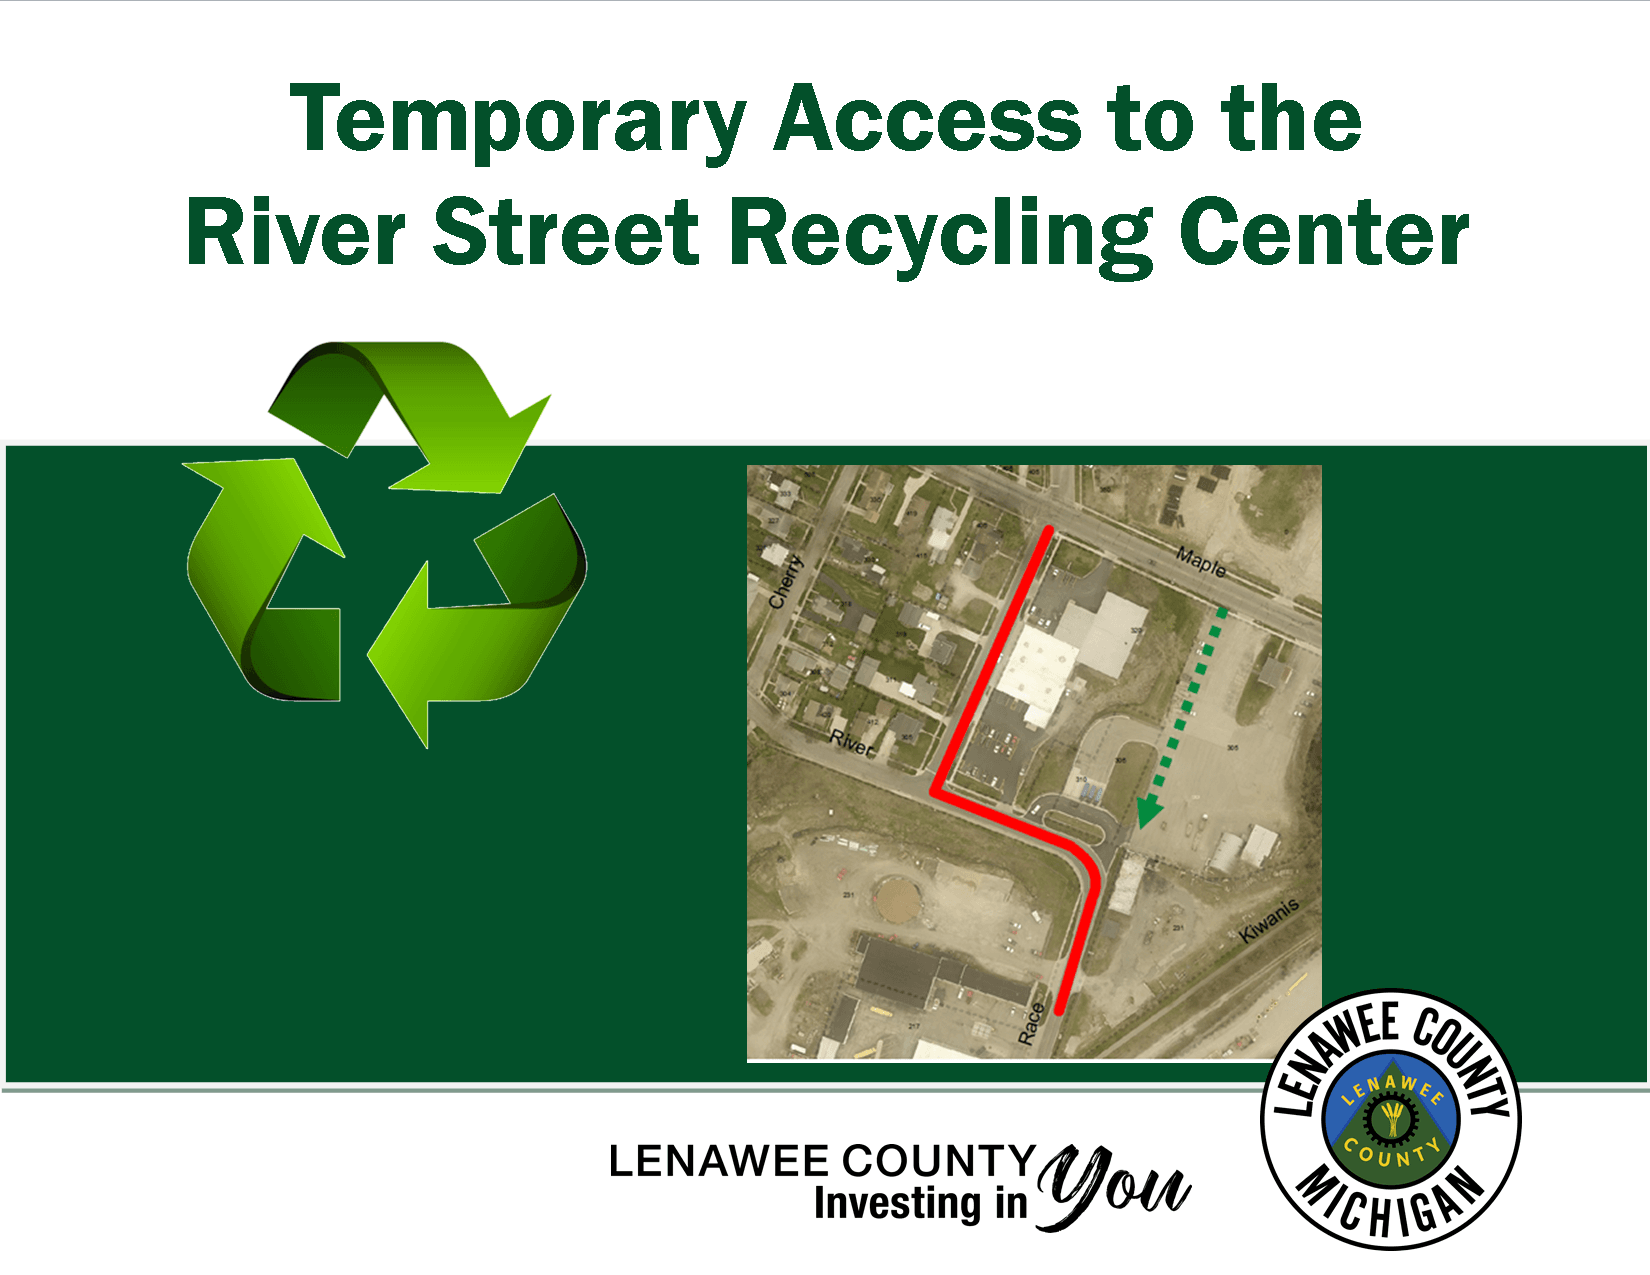 Recyle image and map of temporary access to the drop off site